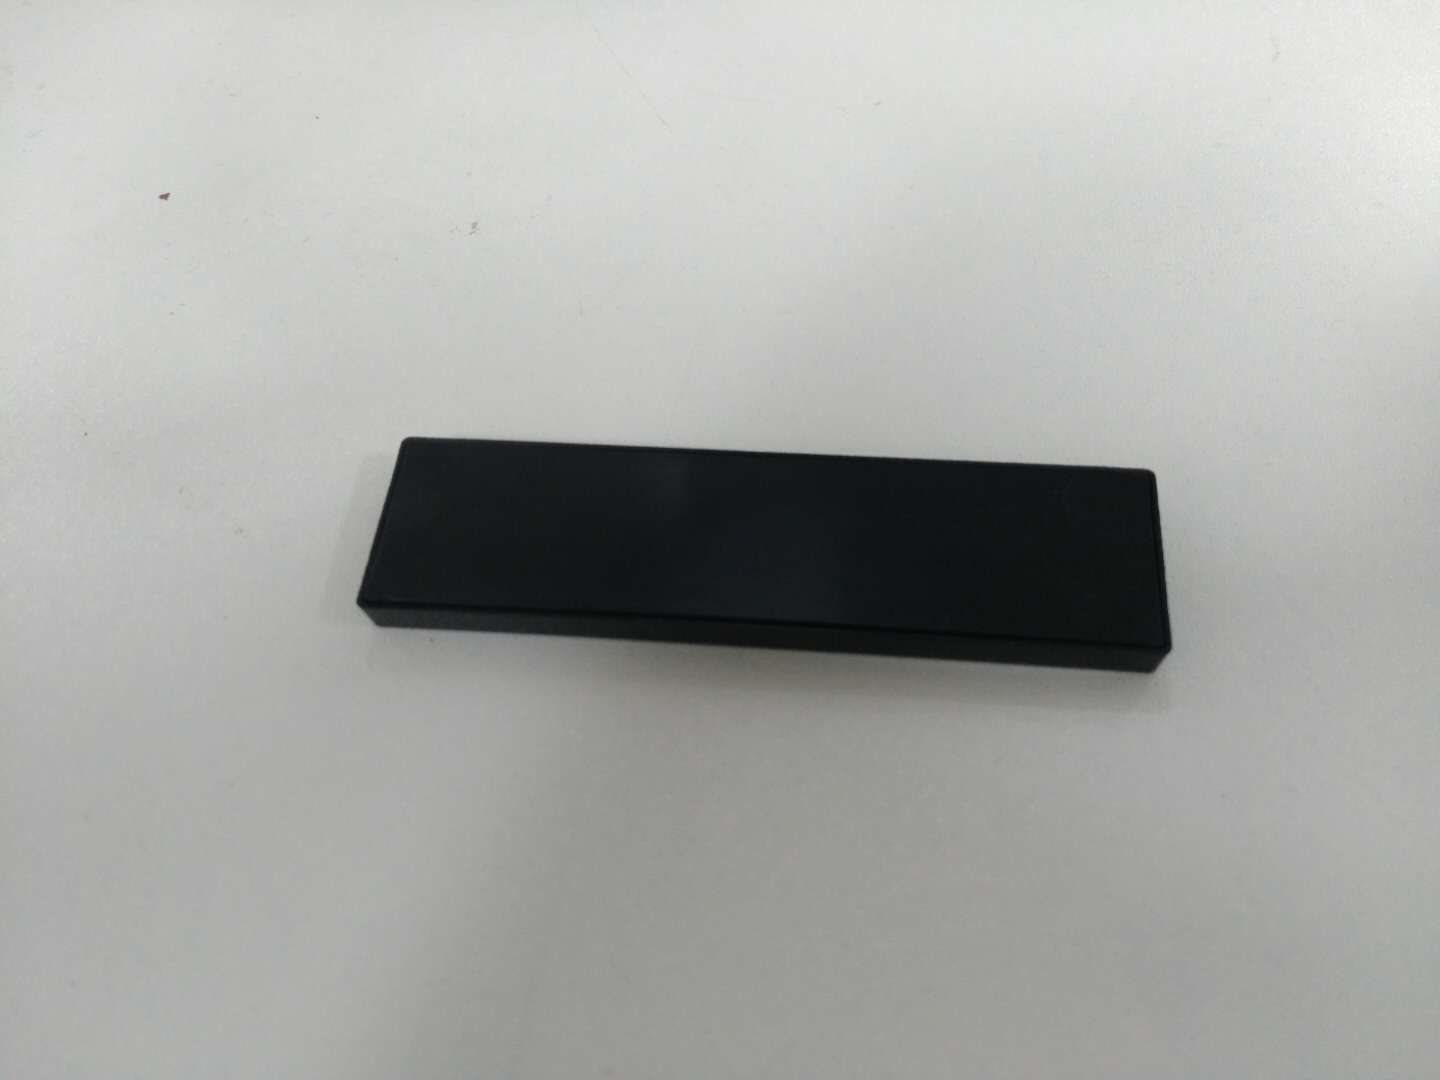 rfid tag in ABS anti metal rfid tag H3 rfid trough metal rfid on metal tags Magnetic rfid tags Metal mount rfid tags own ABS mold good performance from China manufacturer